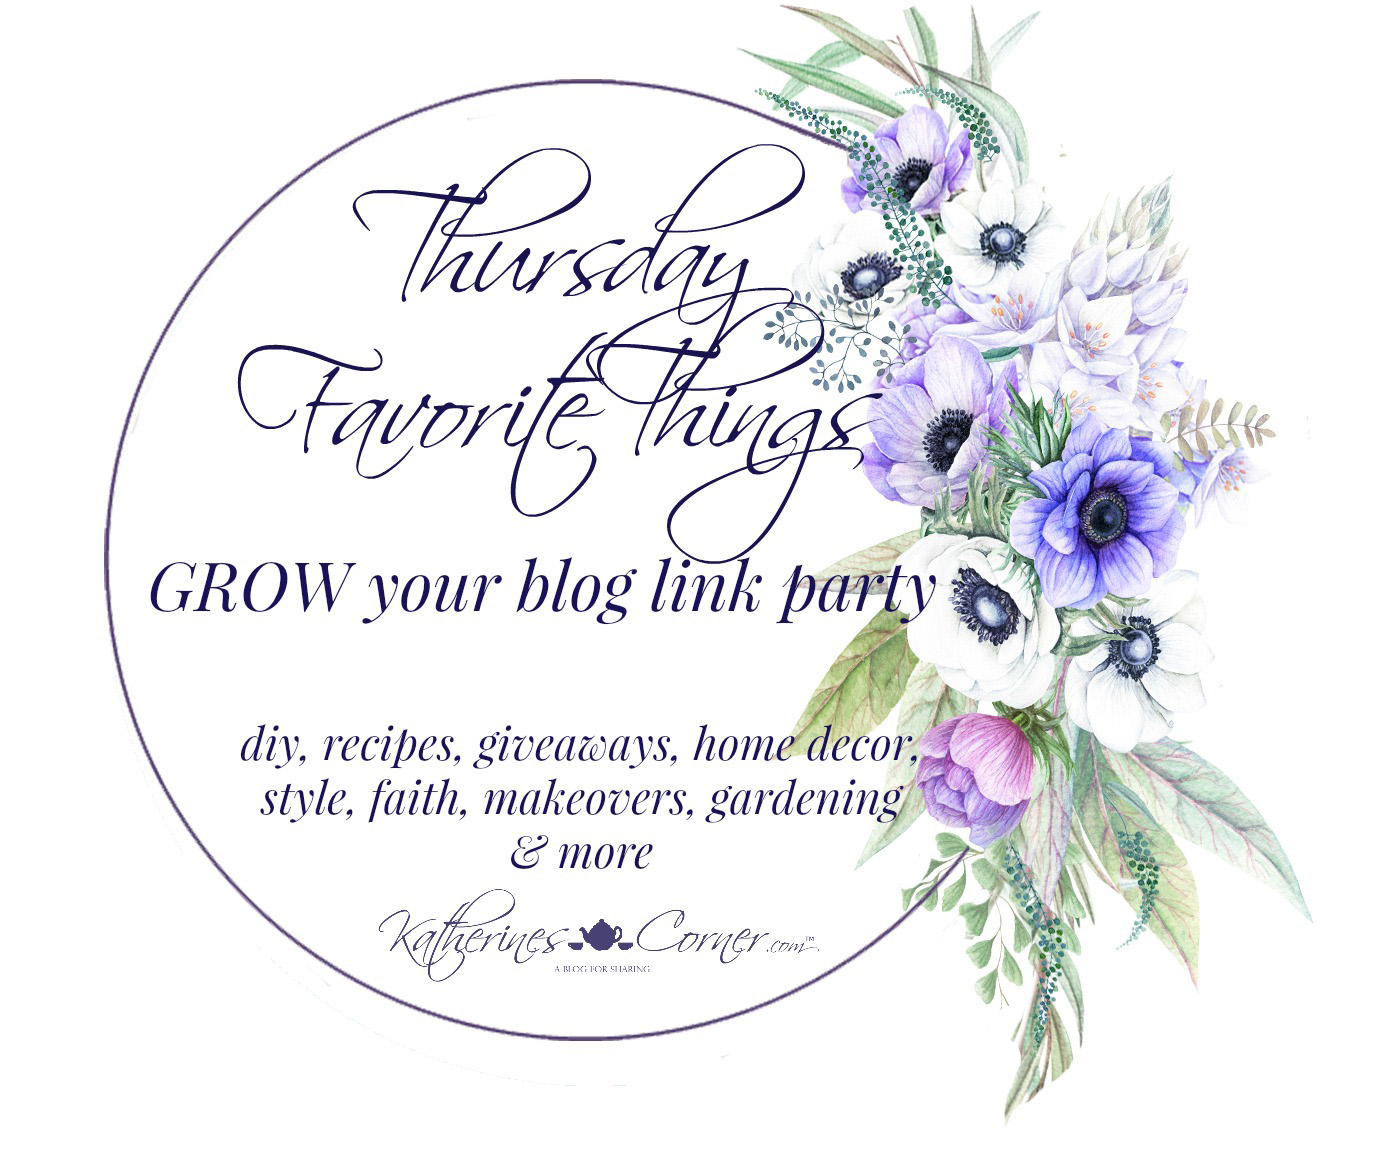 An Unexpected Lesson and Thursday Favorite Thing link party